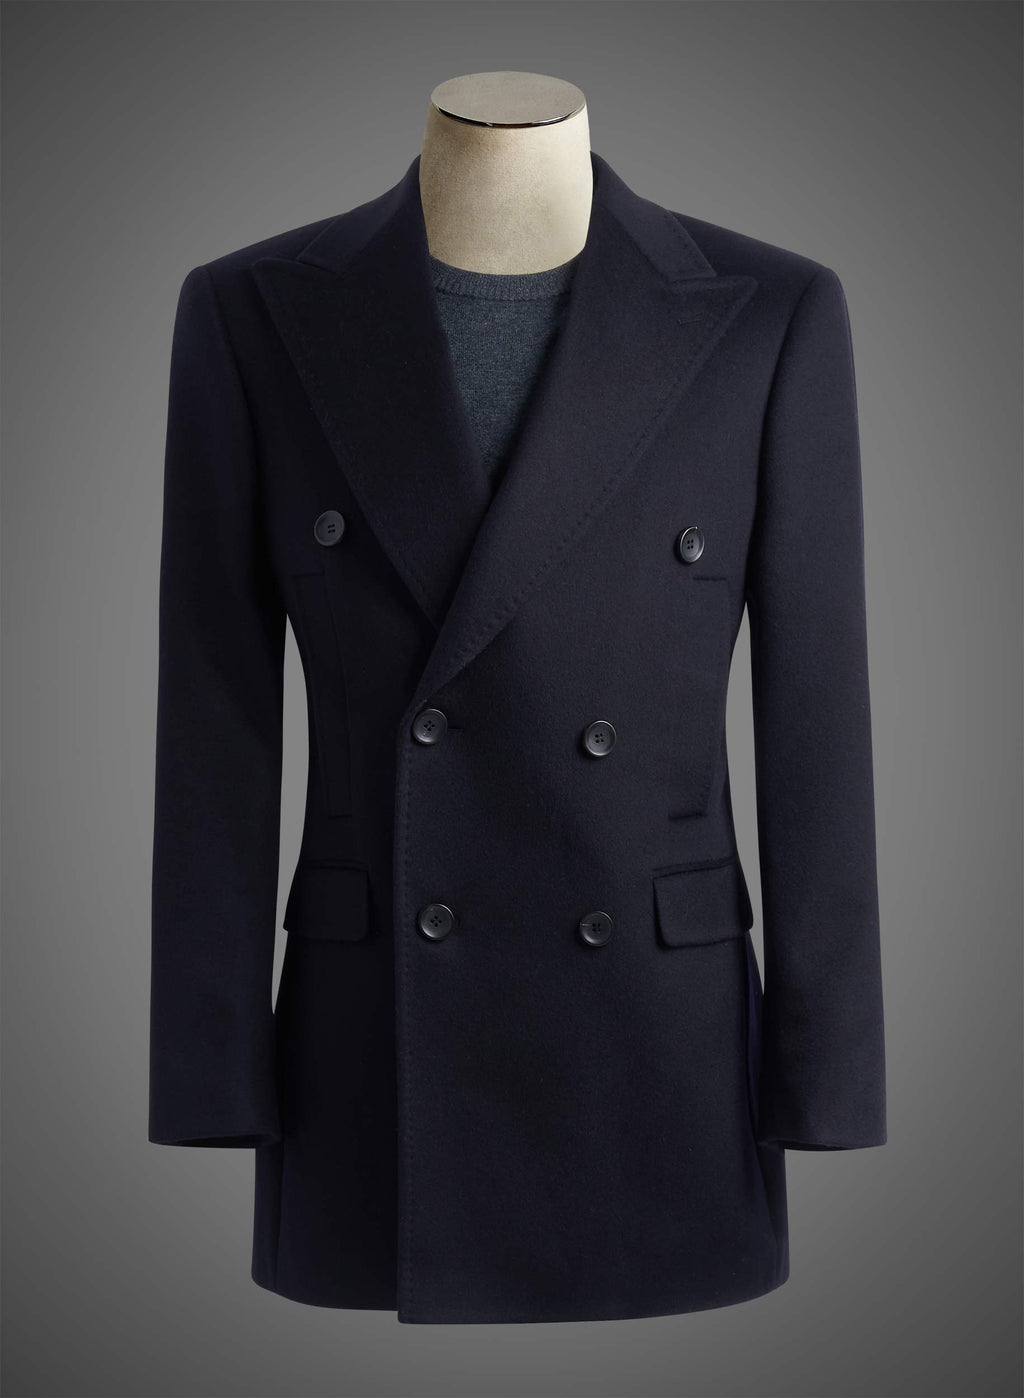 6 button Double breasted Peak lapel coat - Navy (DBN840A)